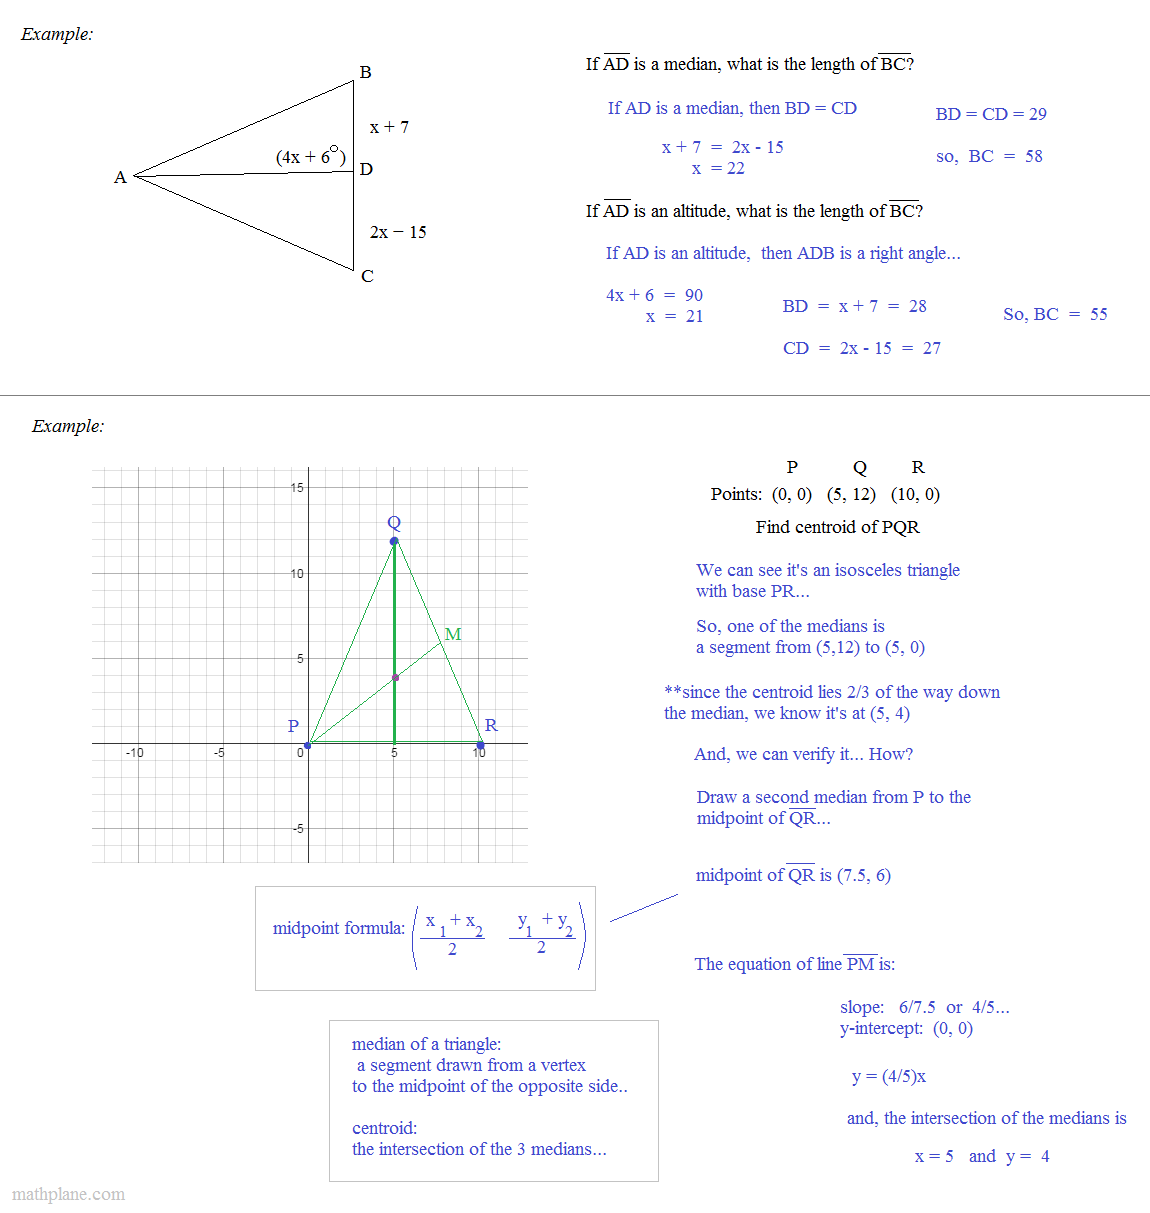 worksheet Medians And Altitudes Of Triangles Worksheet math plane triangle parts median altitude bisectors observations and centroid from points